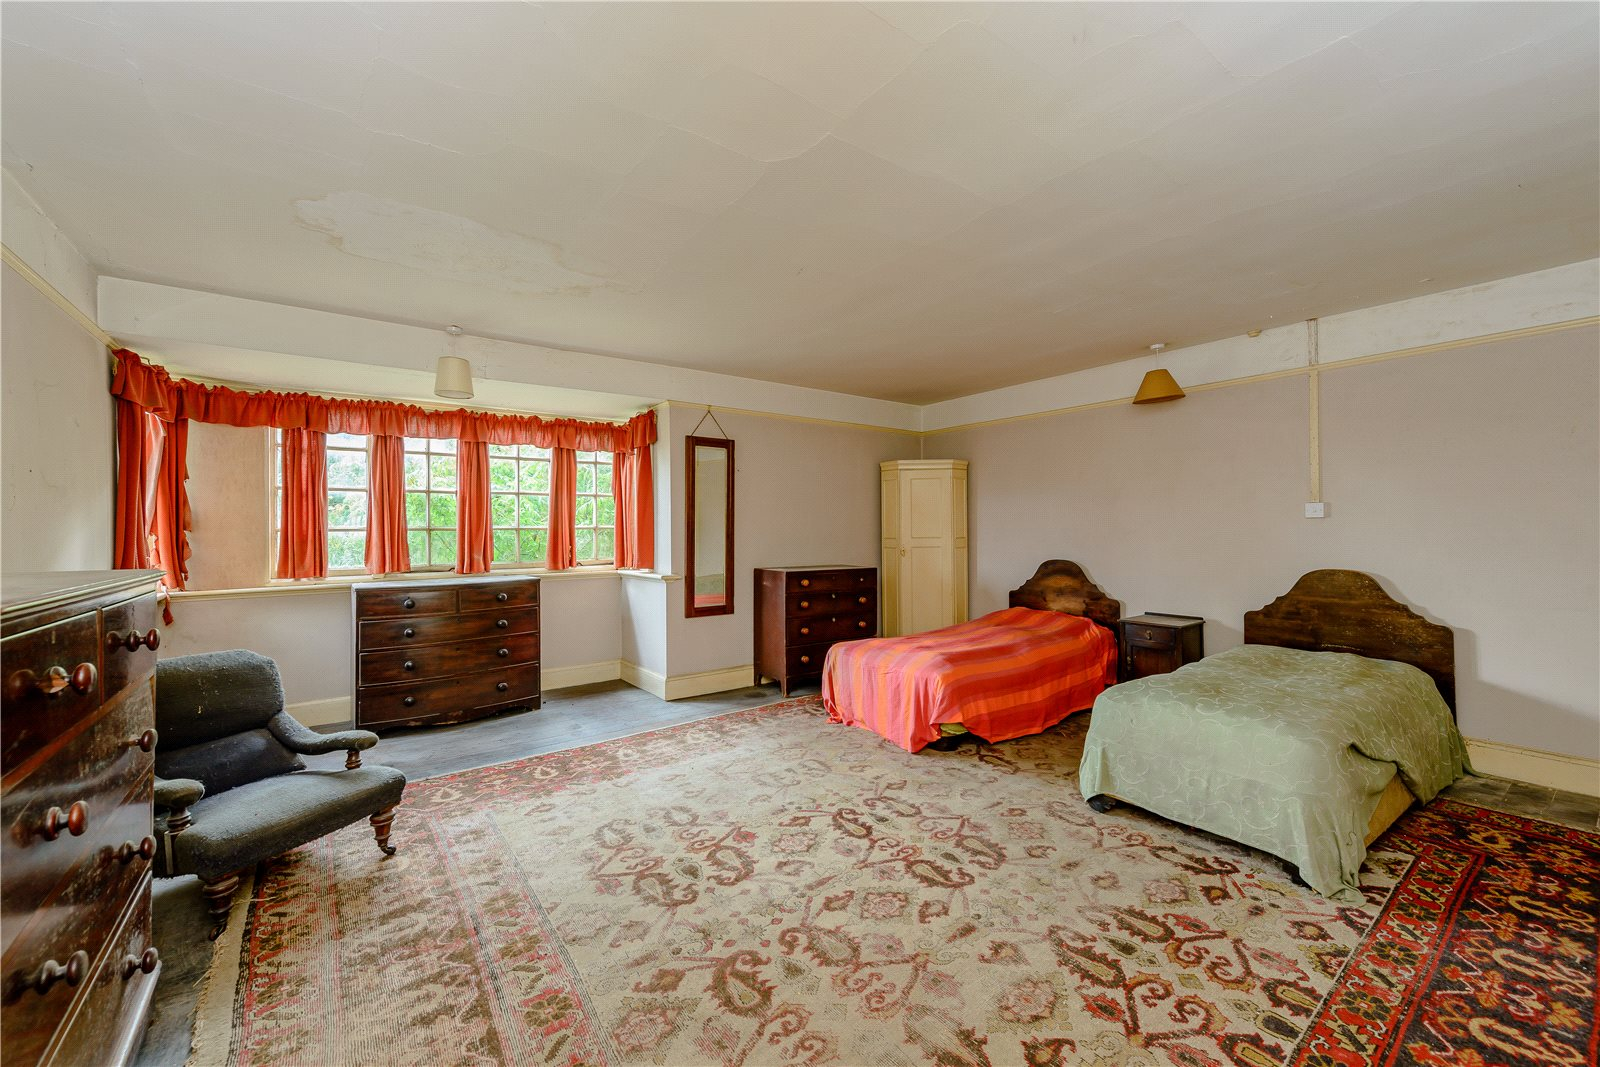 Haslemere - Real Estate and Apartments for Sale | Christie's